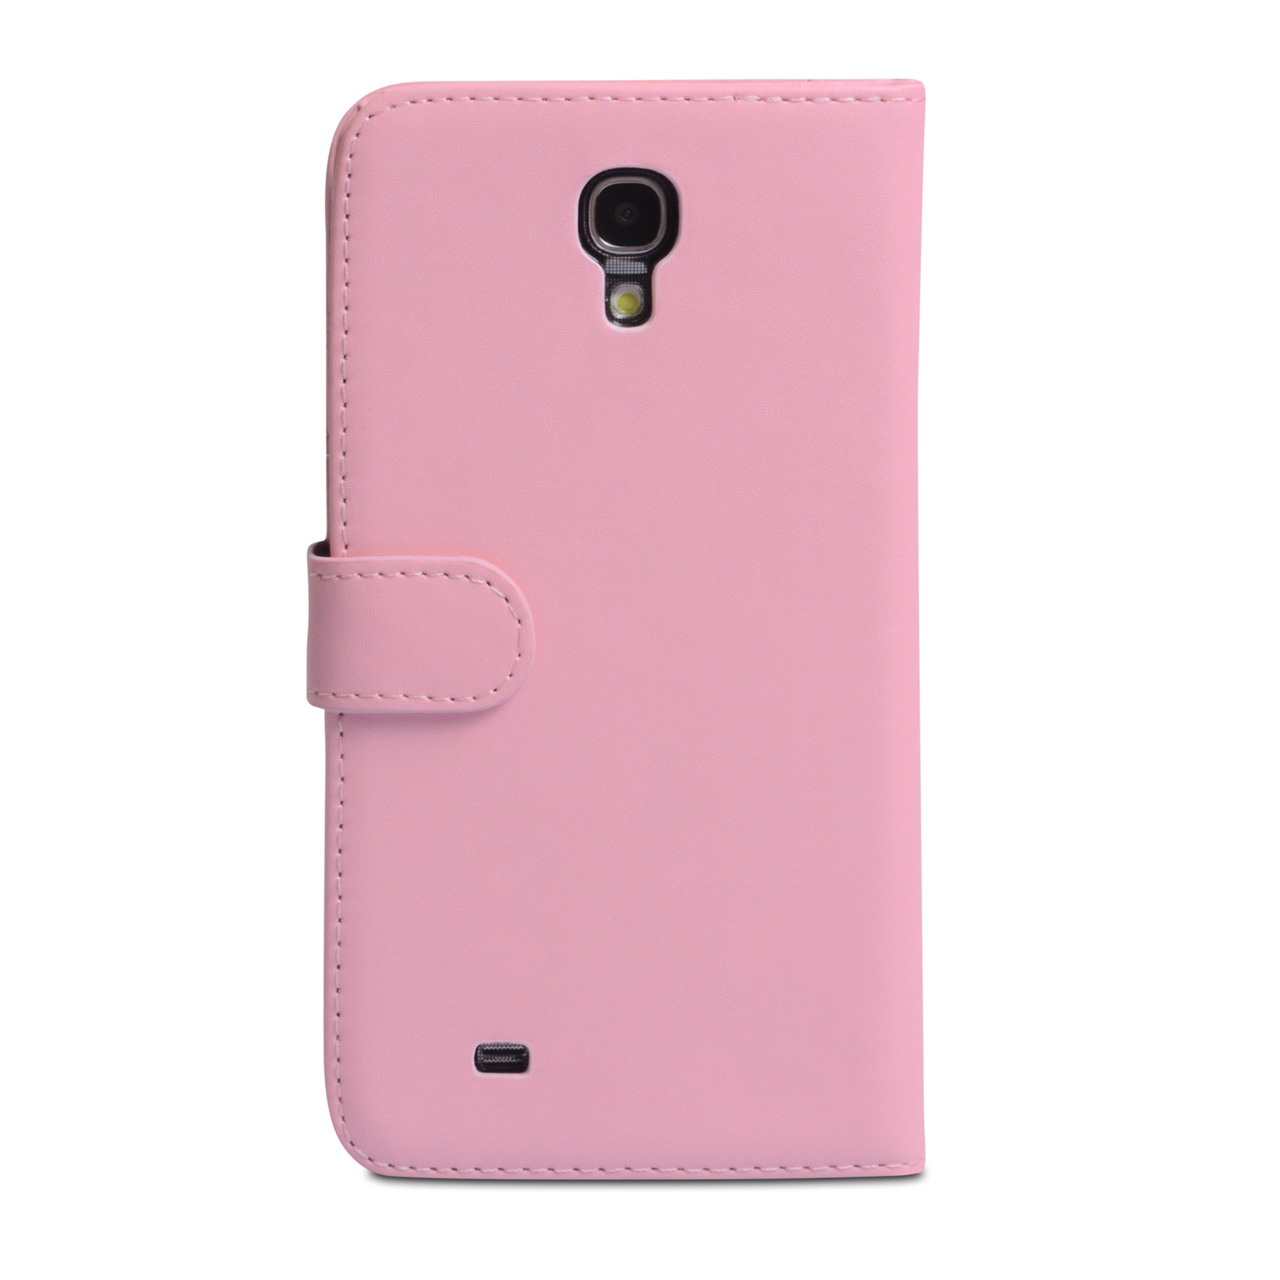 YouSave Samsung Galaxy Mega 6.3 Leather Effect Wallet Case - Baby Pink